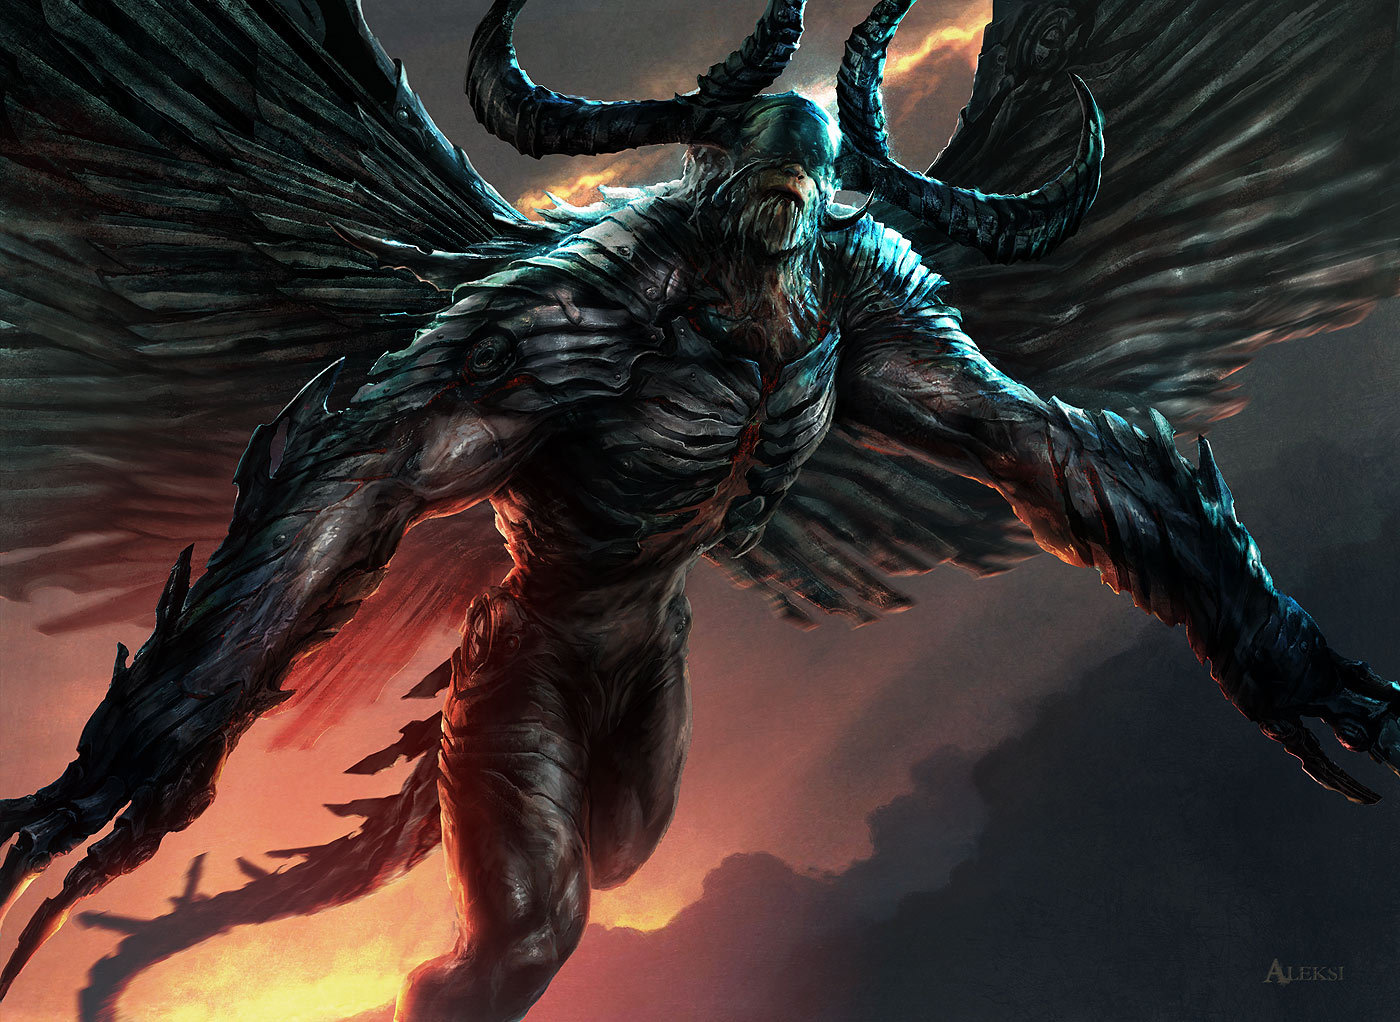 Aleksi Briclot Phyrexian Demon Card illustration for Magic The Gathering